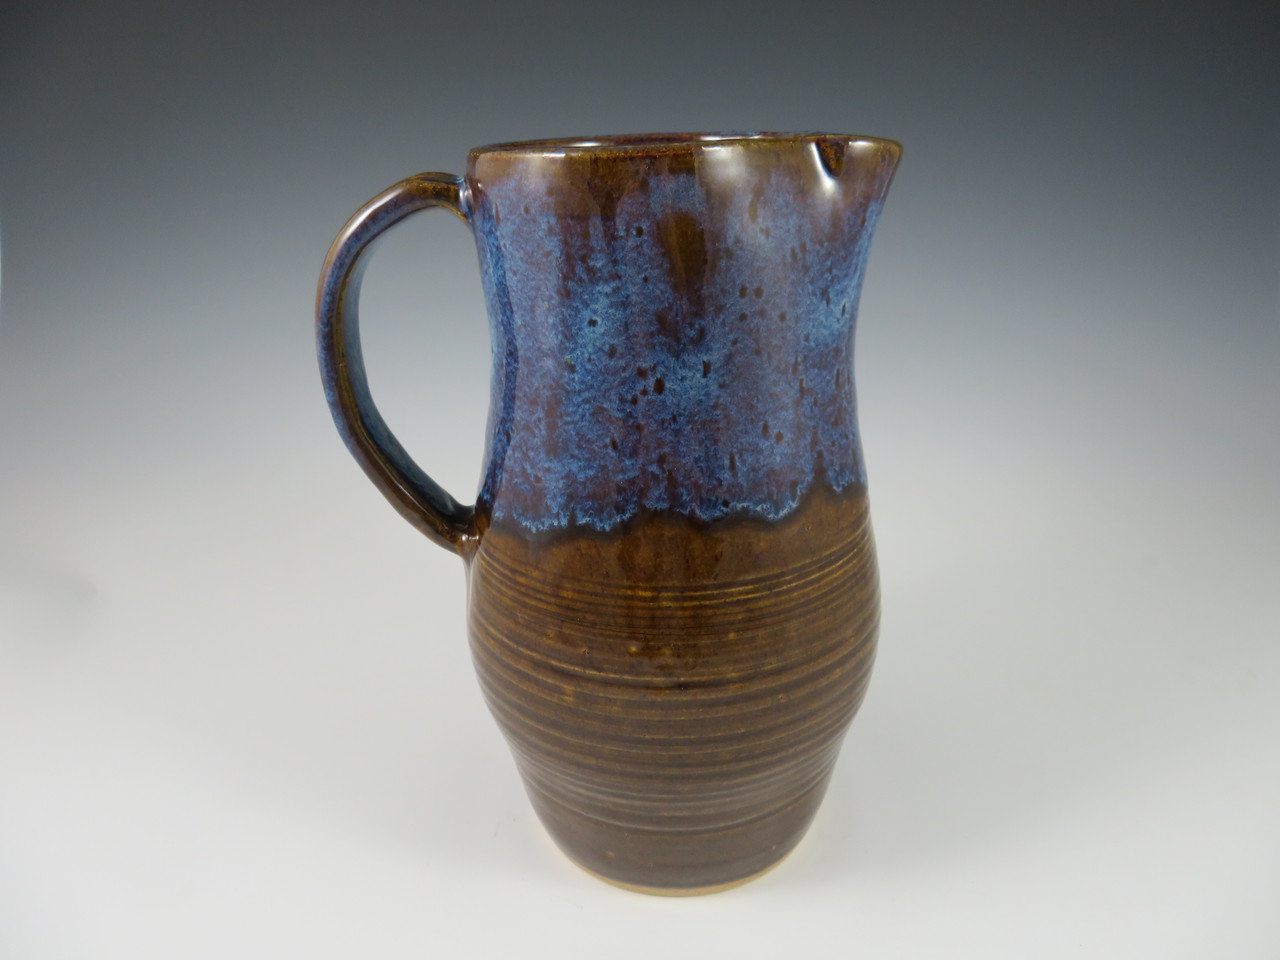 Pitcher in Brown with Blue Rim